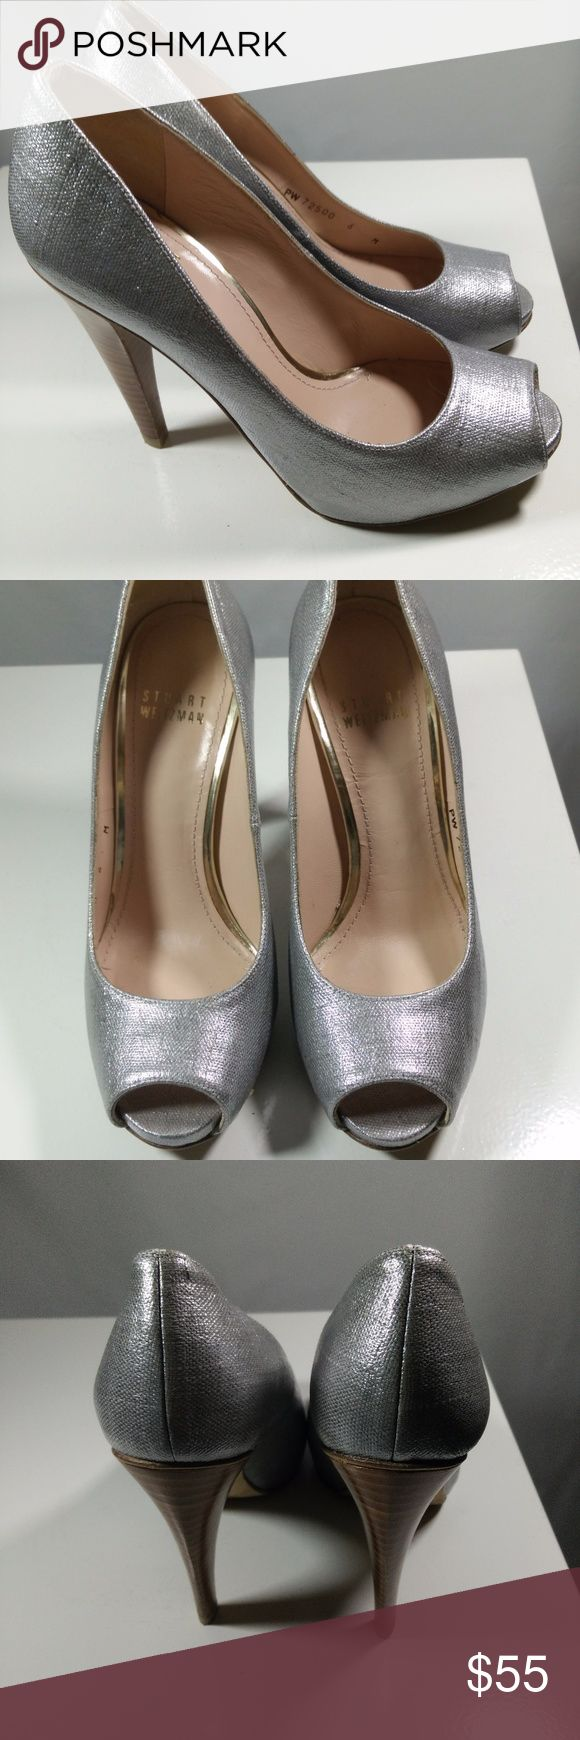 "Stuart Weitzman Women's Silver Peep Toe Stuart Weitzman Silver Peep Toe Pump 4"" Heels Textured Slip On Sz 6M -  in VERY NICE OVERALL CONDITION!  (ref#1175)  Please see pictures for more details. Stuart Weitzman Shoes Heels"